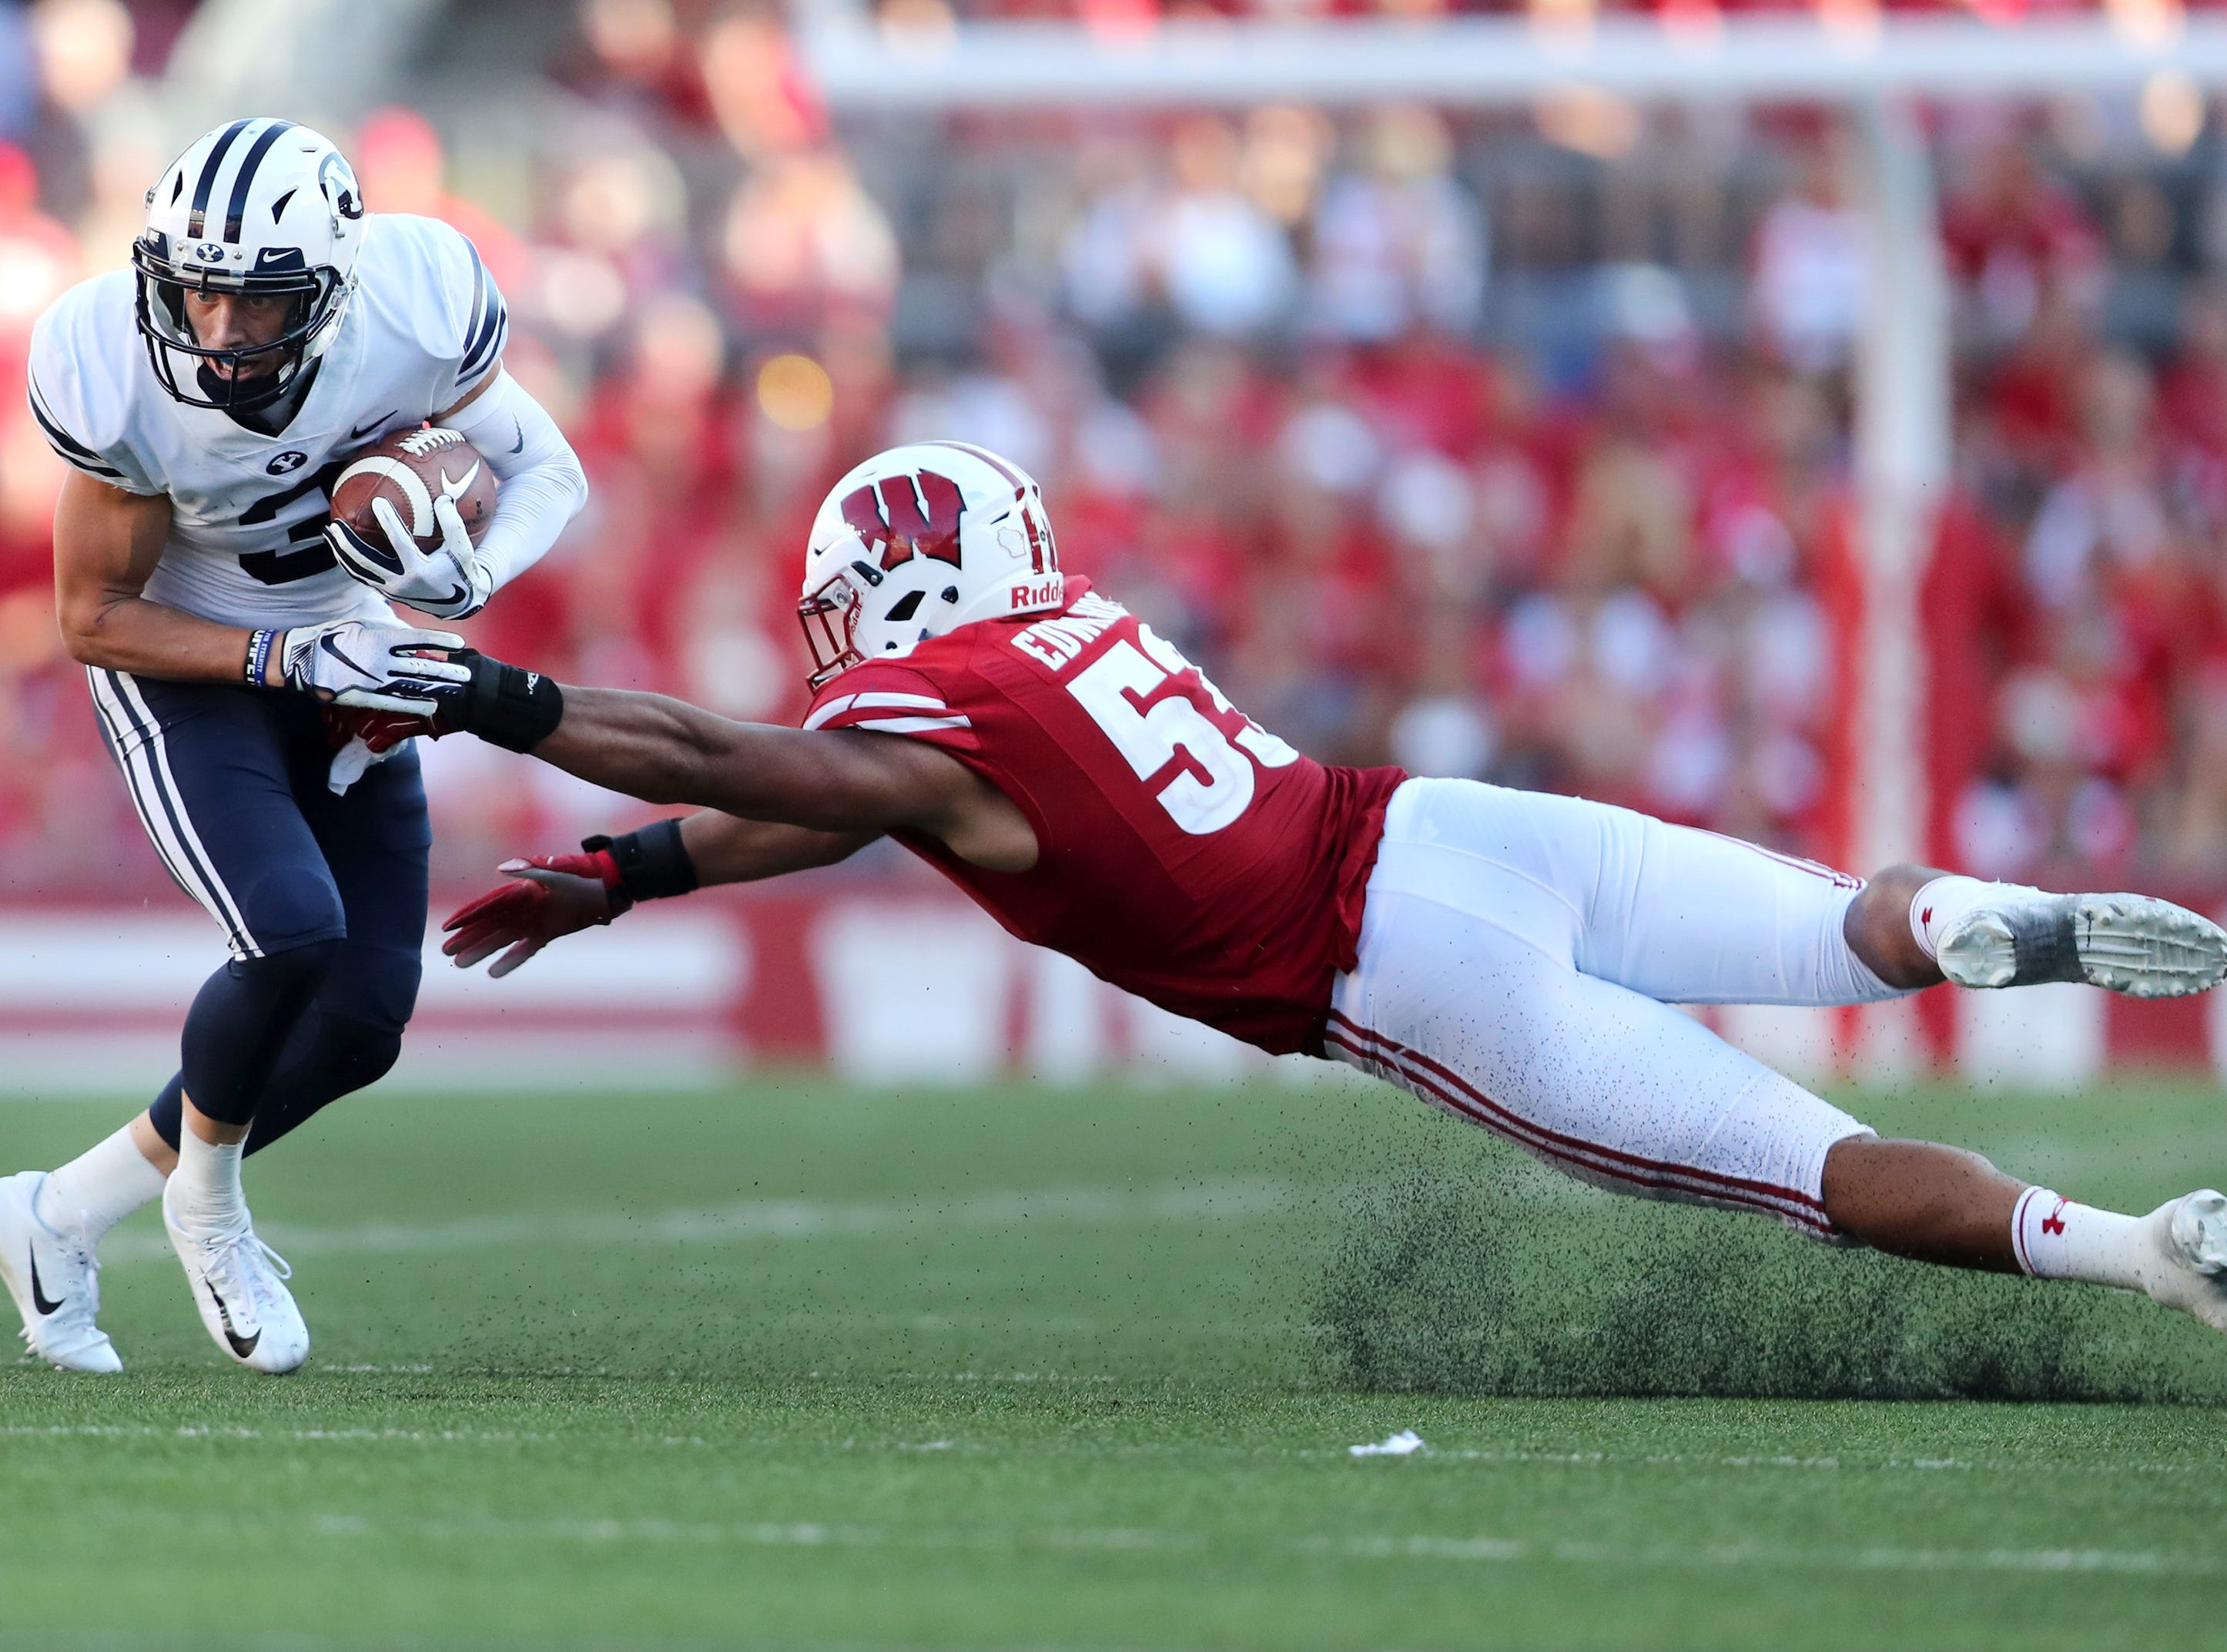 Wisconsin Badgers linebacker T.J. Edwards (53) slips as he tries to tackle Brigham Young Cougars wide receiver Dylan Collie (3) Saturday, Sept. 15, 2018, at Camp Randall Stadium in Madison, Wis.Danny Damiani/USA TODAY NETWORK-Wisconsin